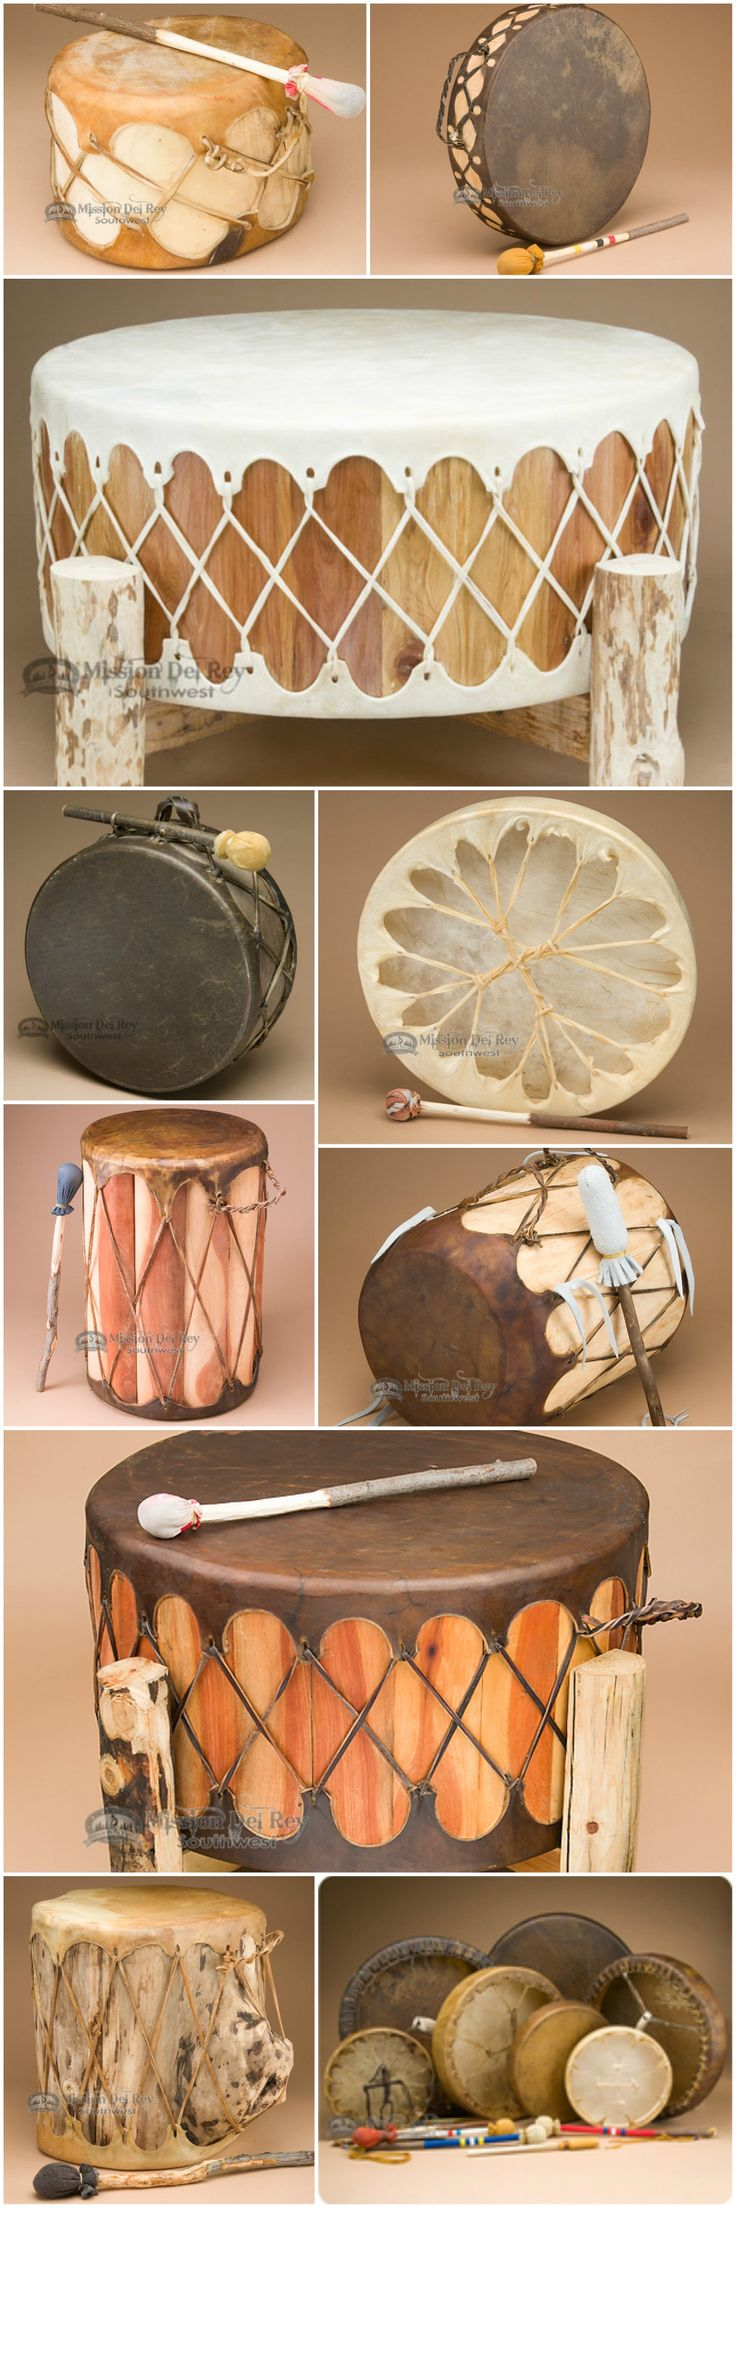 Our Native American drums are perfect for drumming groups, personal meditation, Native ceremonies, and for use as southwest decor.  All of our drums are handcrafted with quality craftsmaship and have beautiful resonating sound. See our wide selection of hand drums, table drums, pow wow drums and more at http://www.missiondelrey.com/native-american-drums/